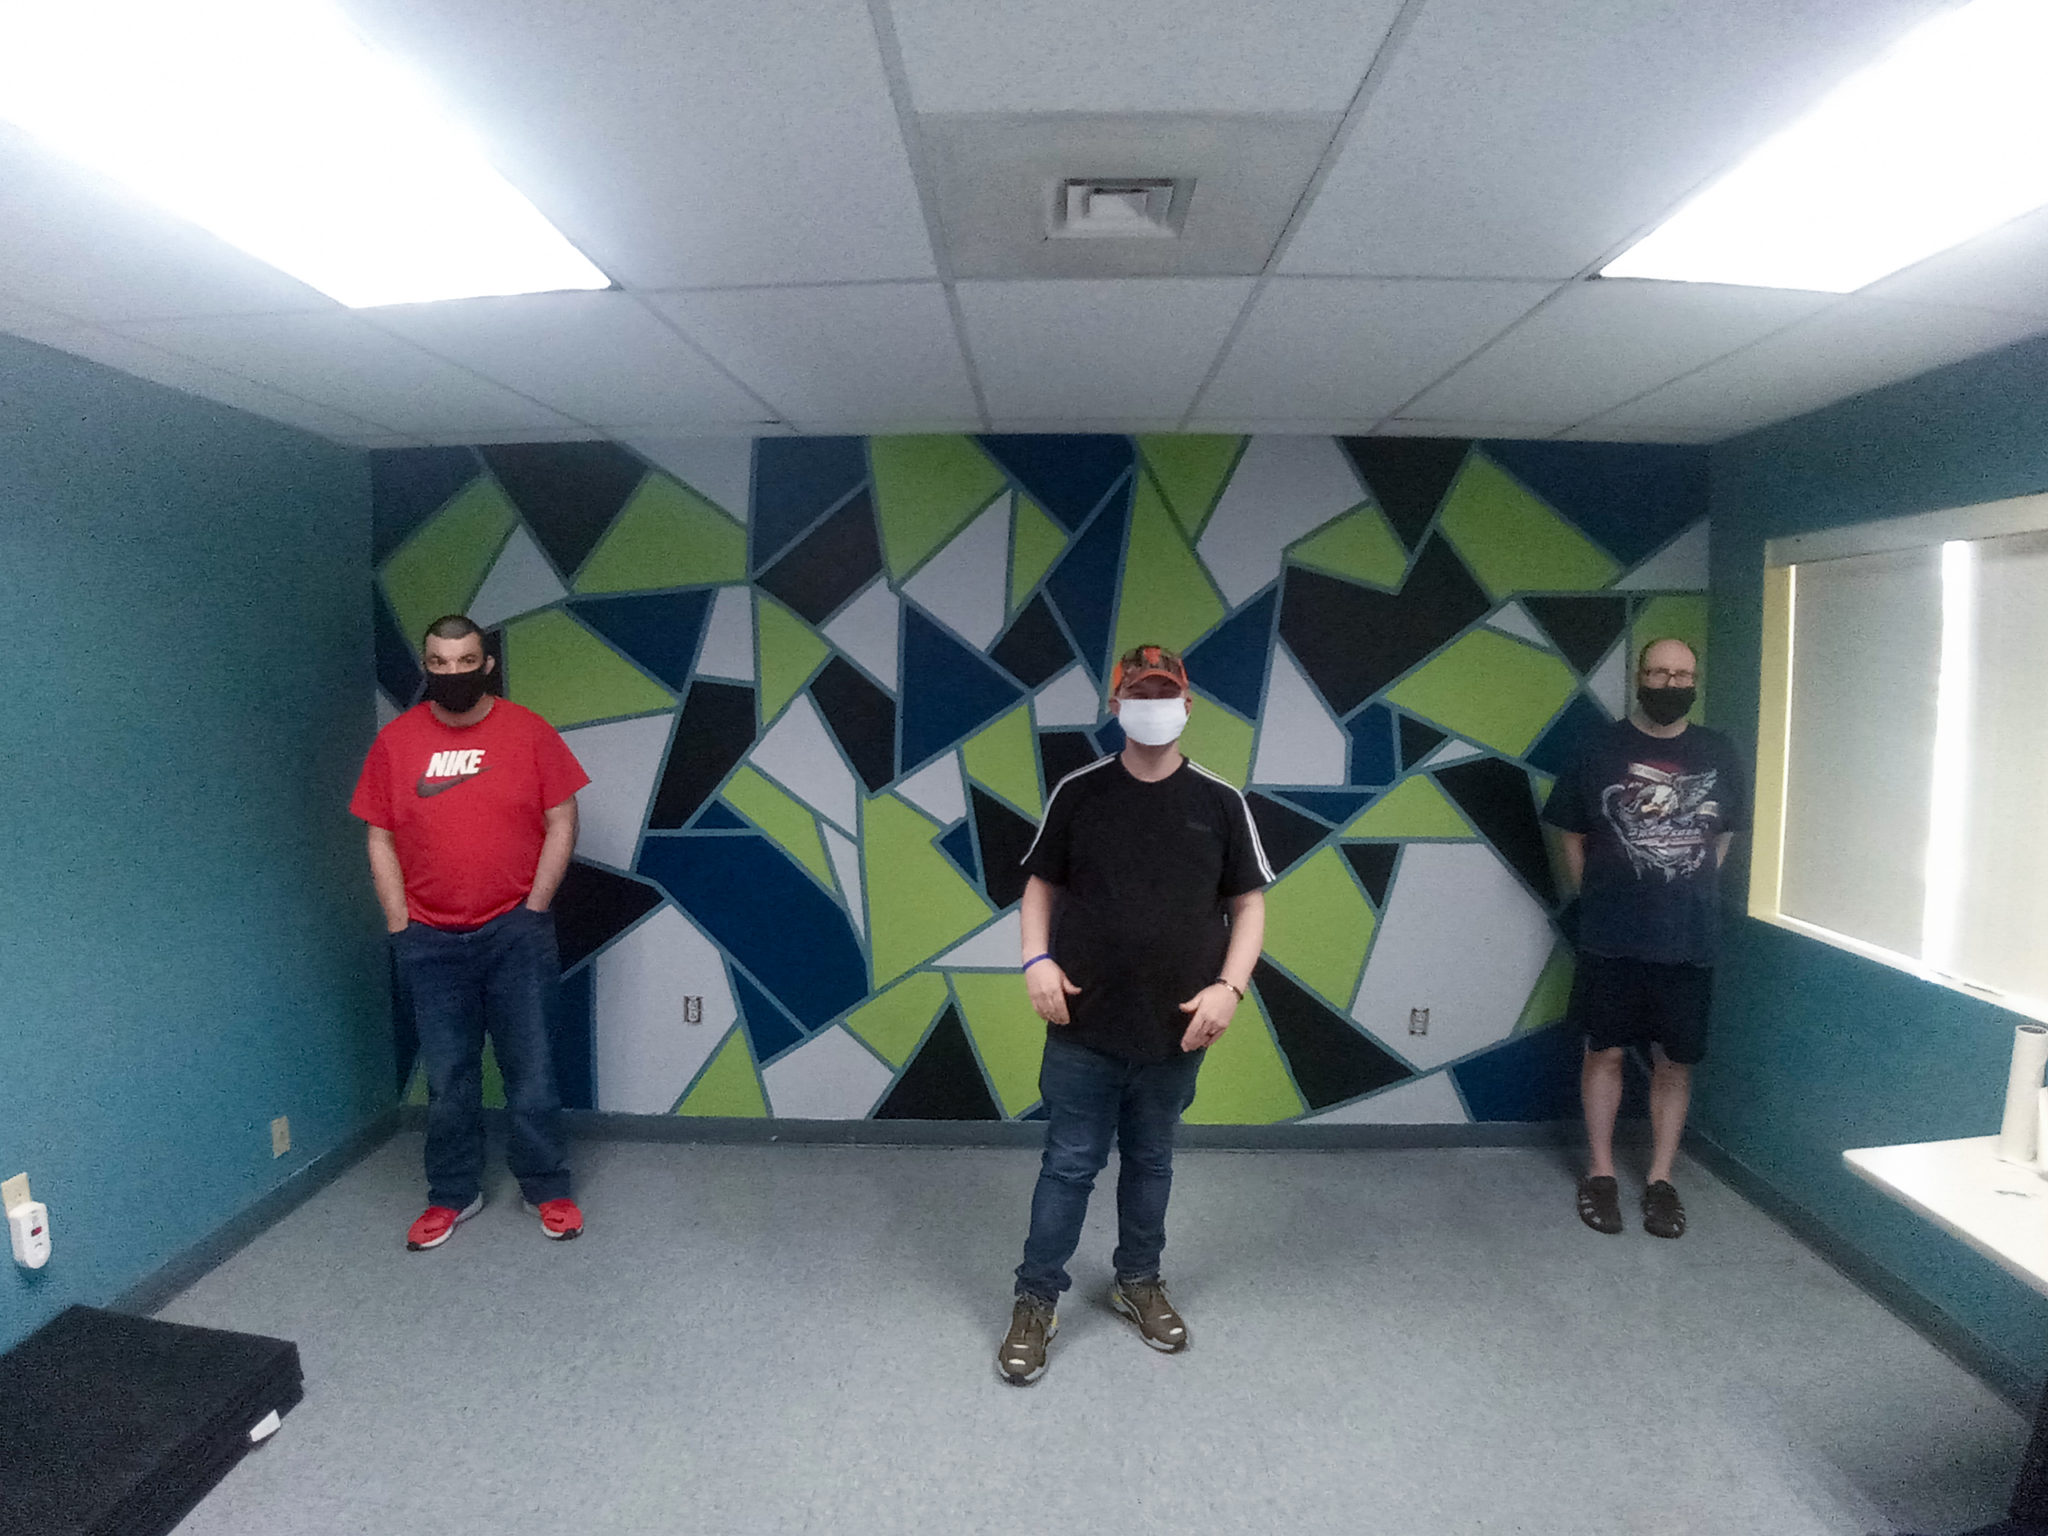 Three of the guys who helped paint the wall pose with the finished product